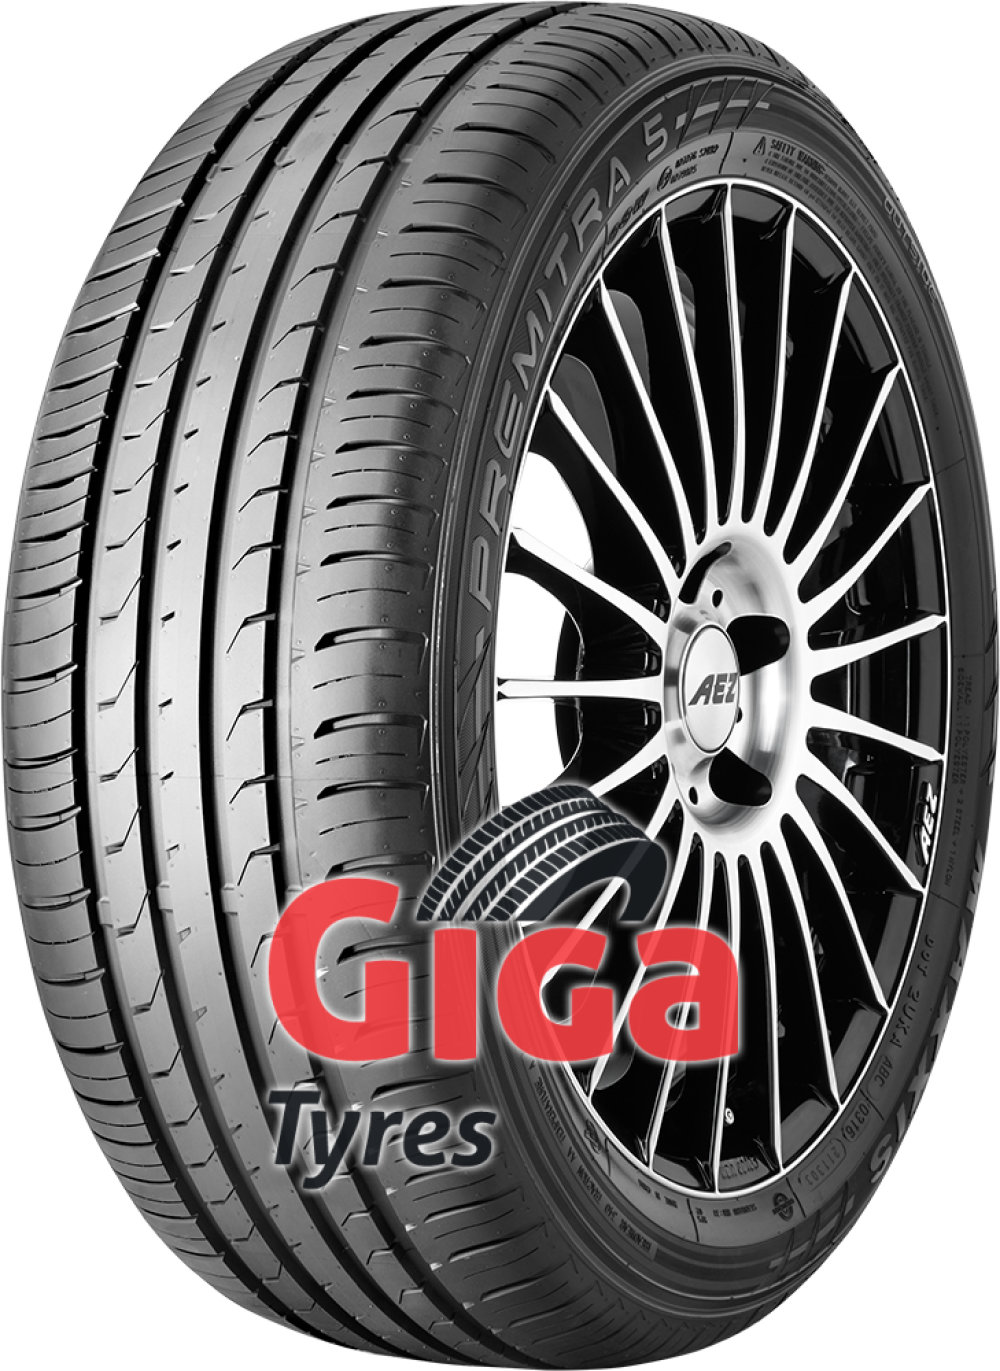 Maxxis Premitra 5 ( 225/50 ZR17 98W XL with rim protection ridge (FSL) )